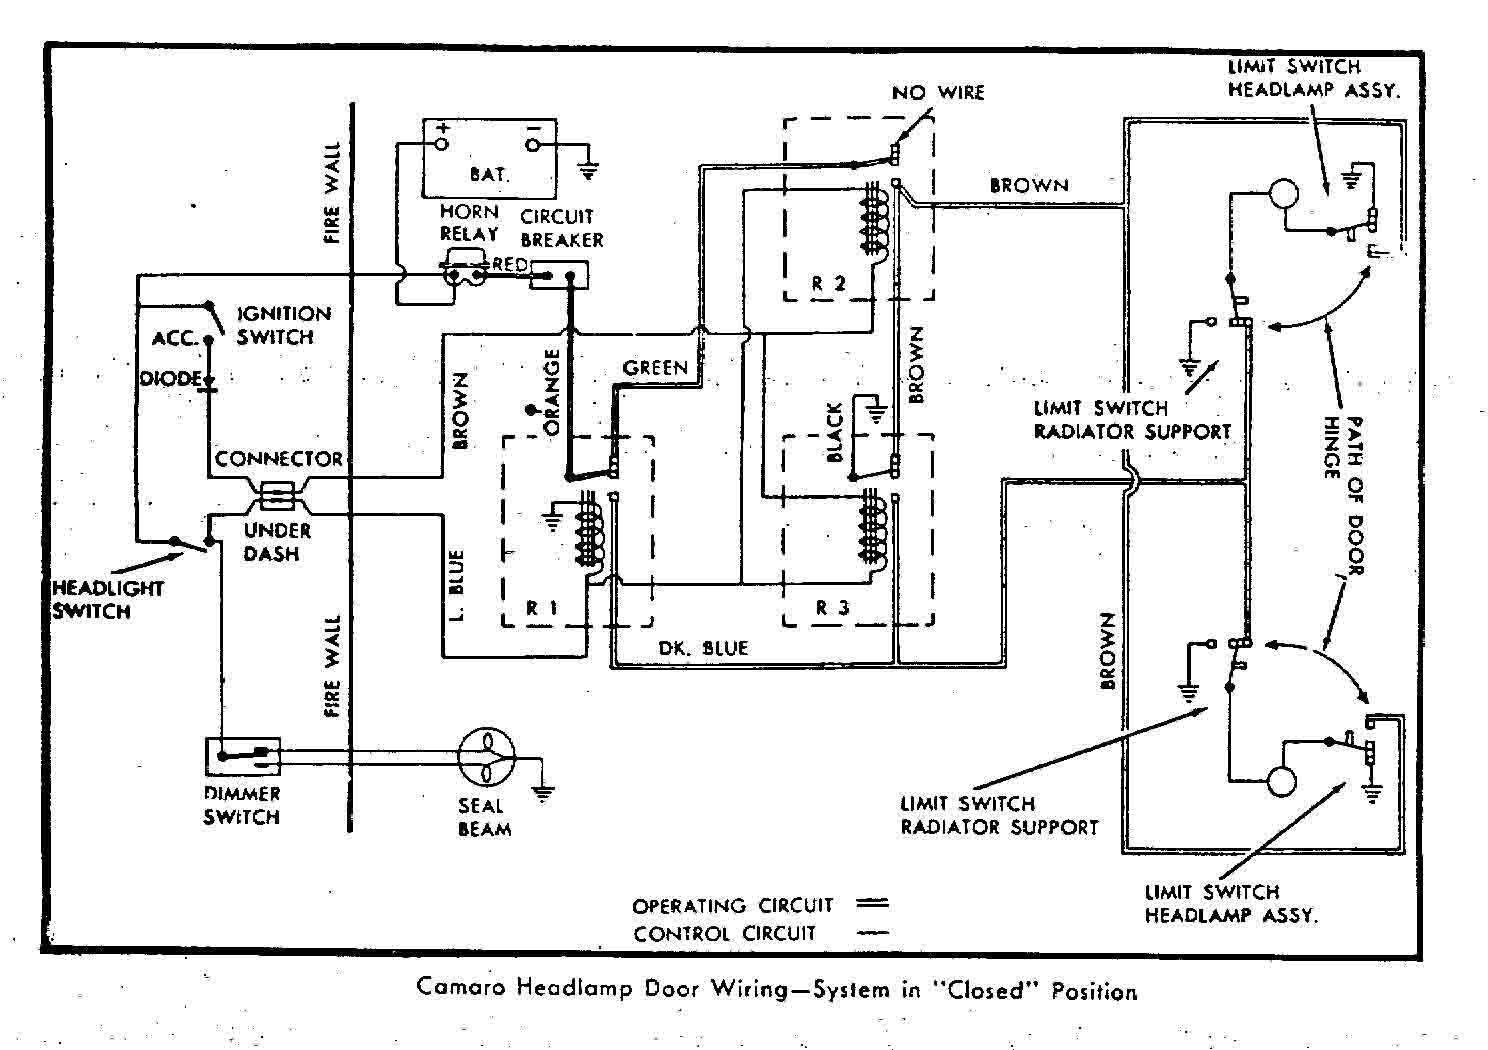 1967 camaro wiring harness diagram 1967 camaro headlight switch ...  wires